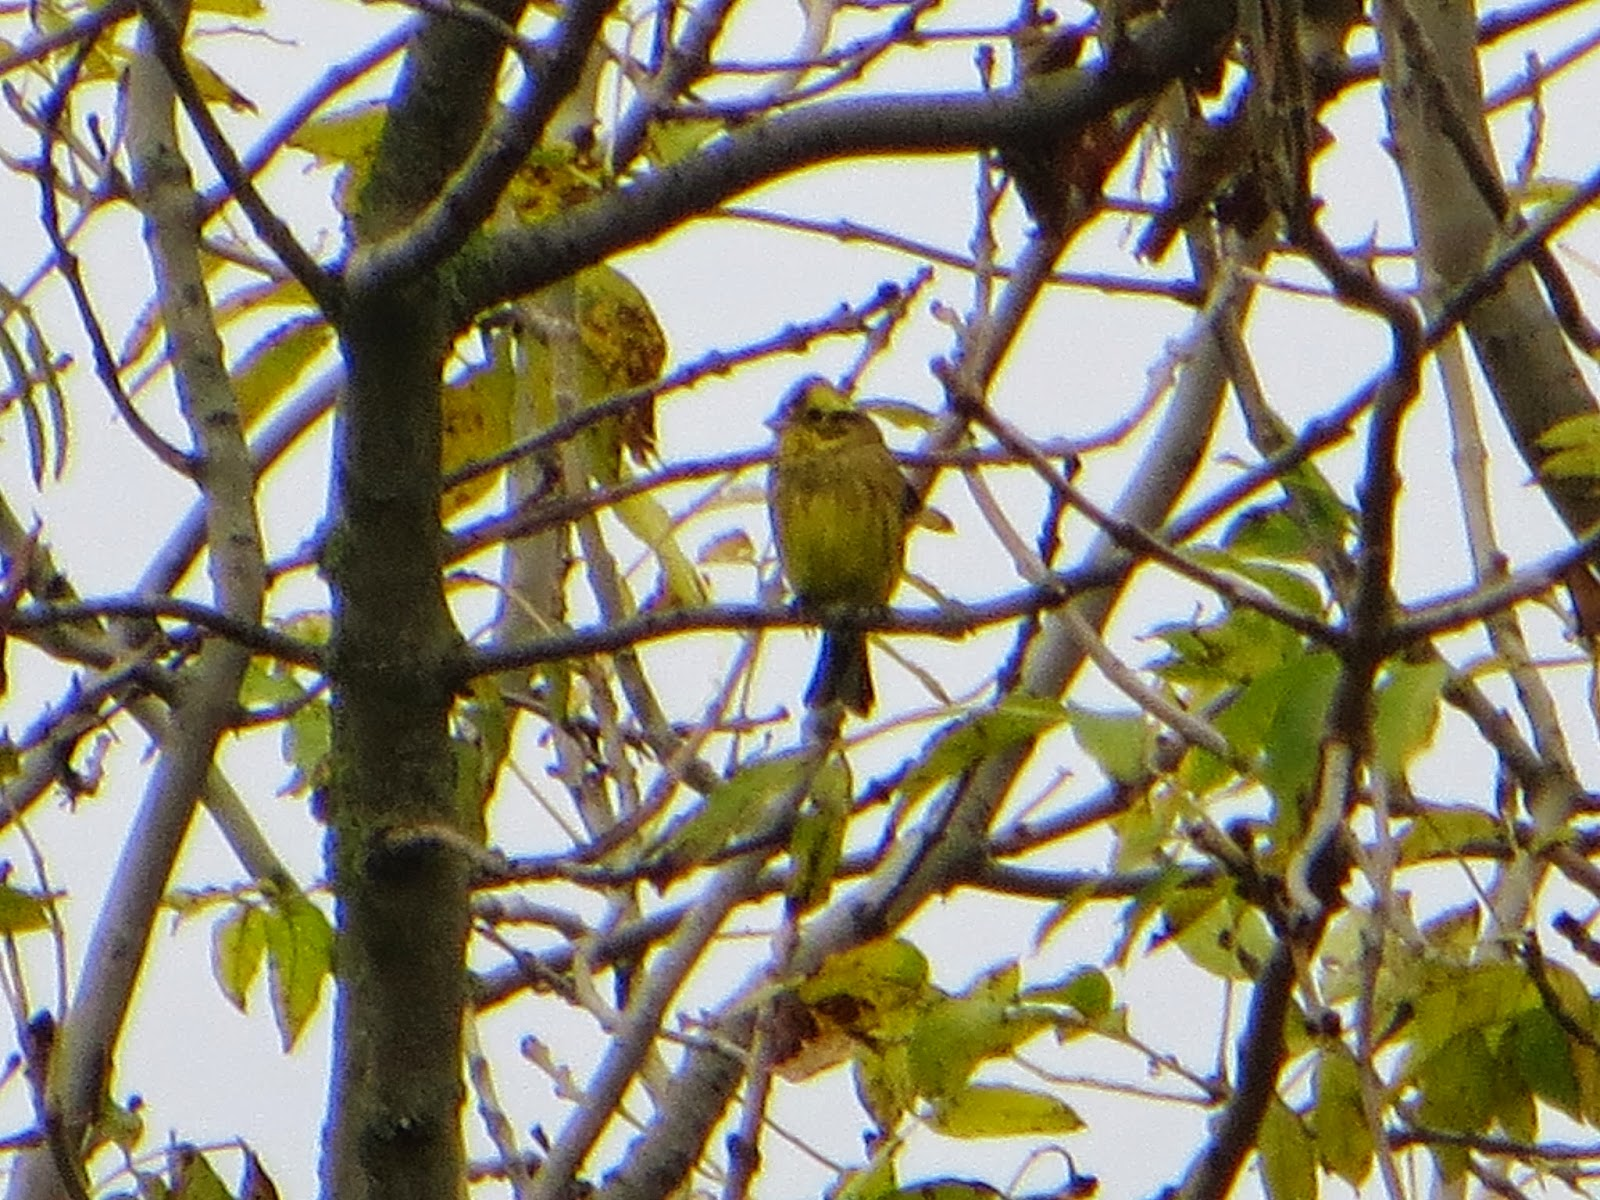 A flock of Yellowhammers sining merrily and having fun in the fields.